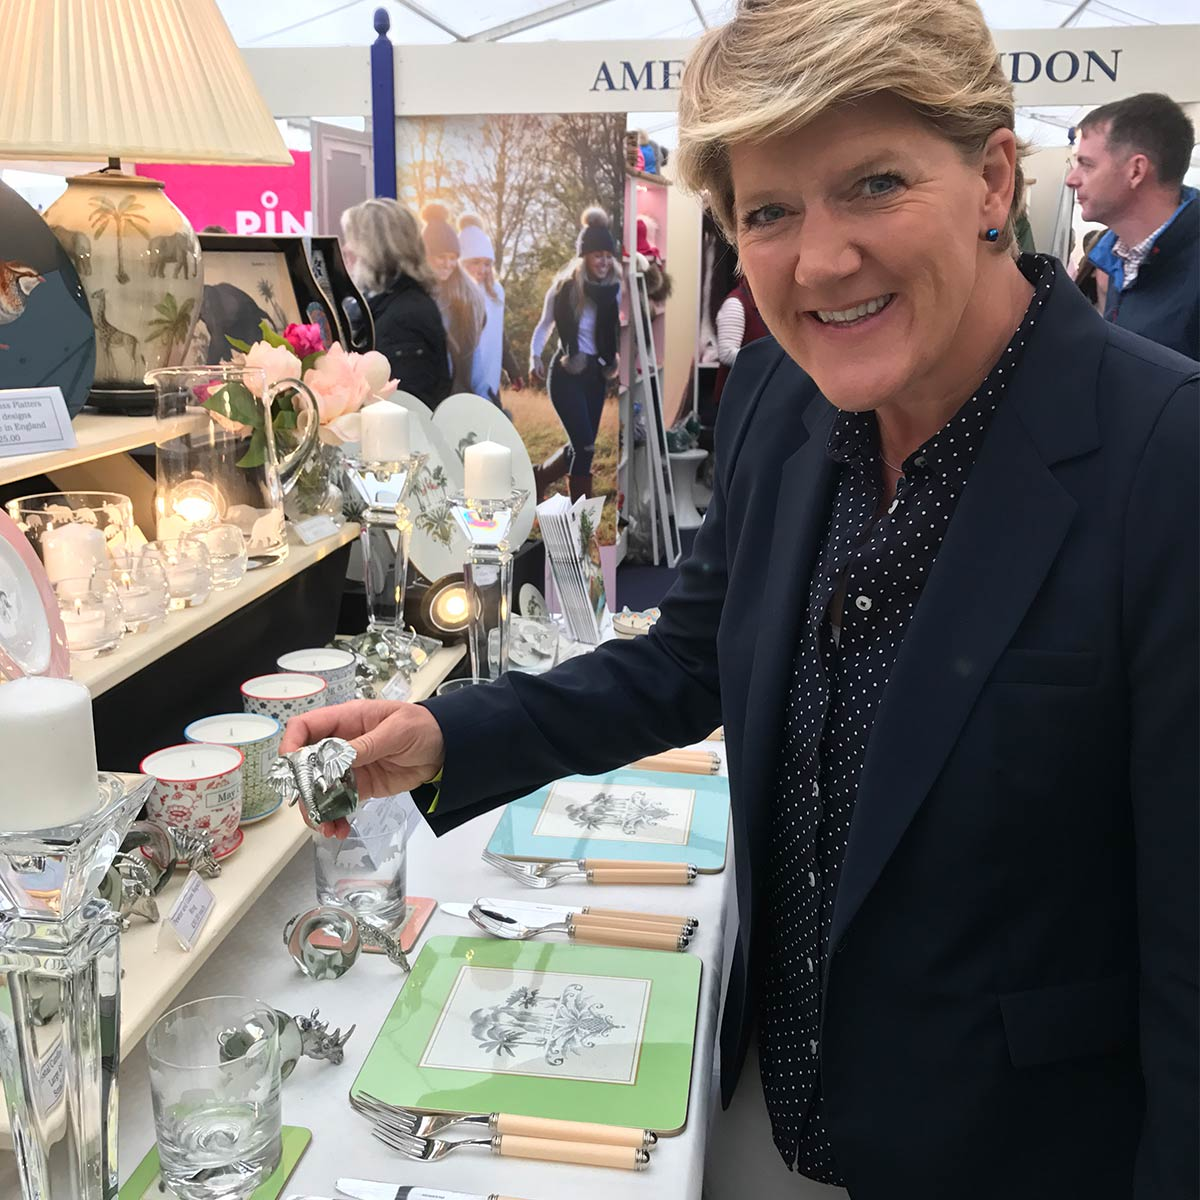 Clare Balding chatting with us at our Burghley stand - Club Matters